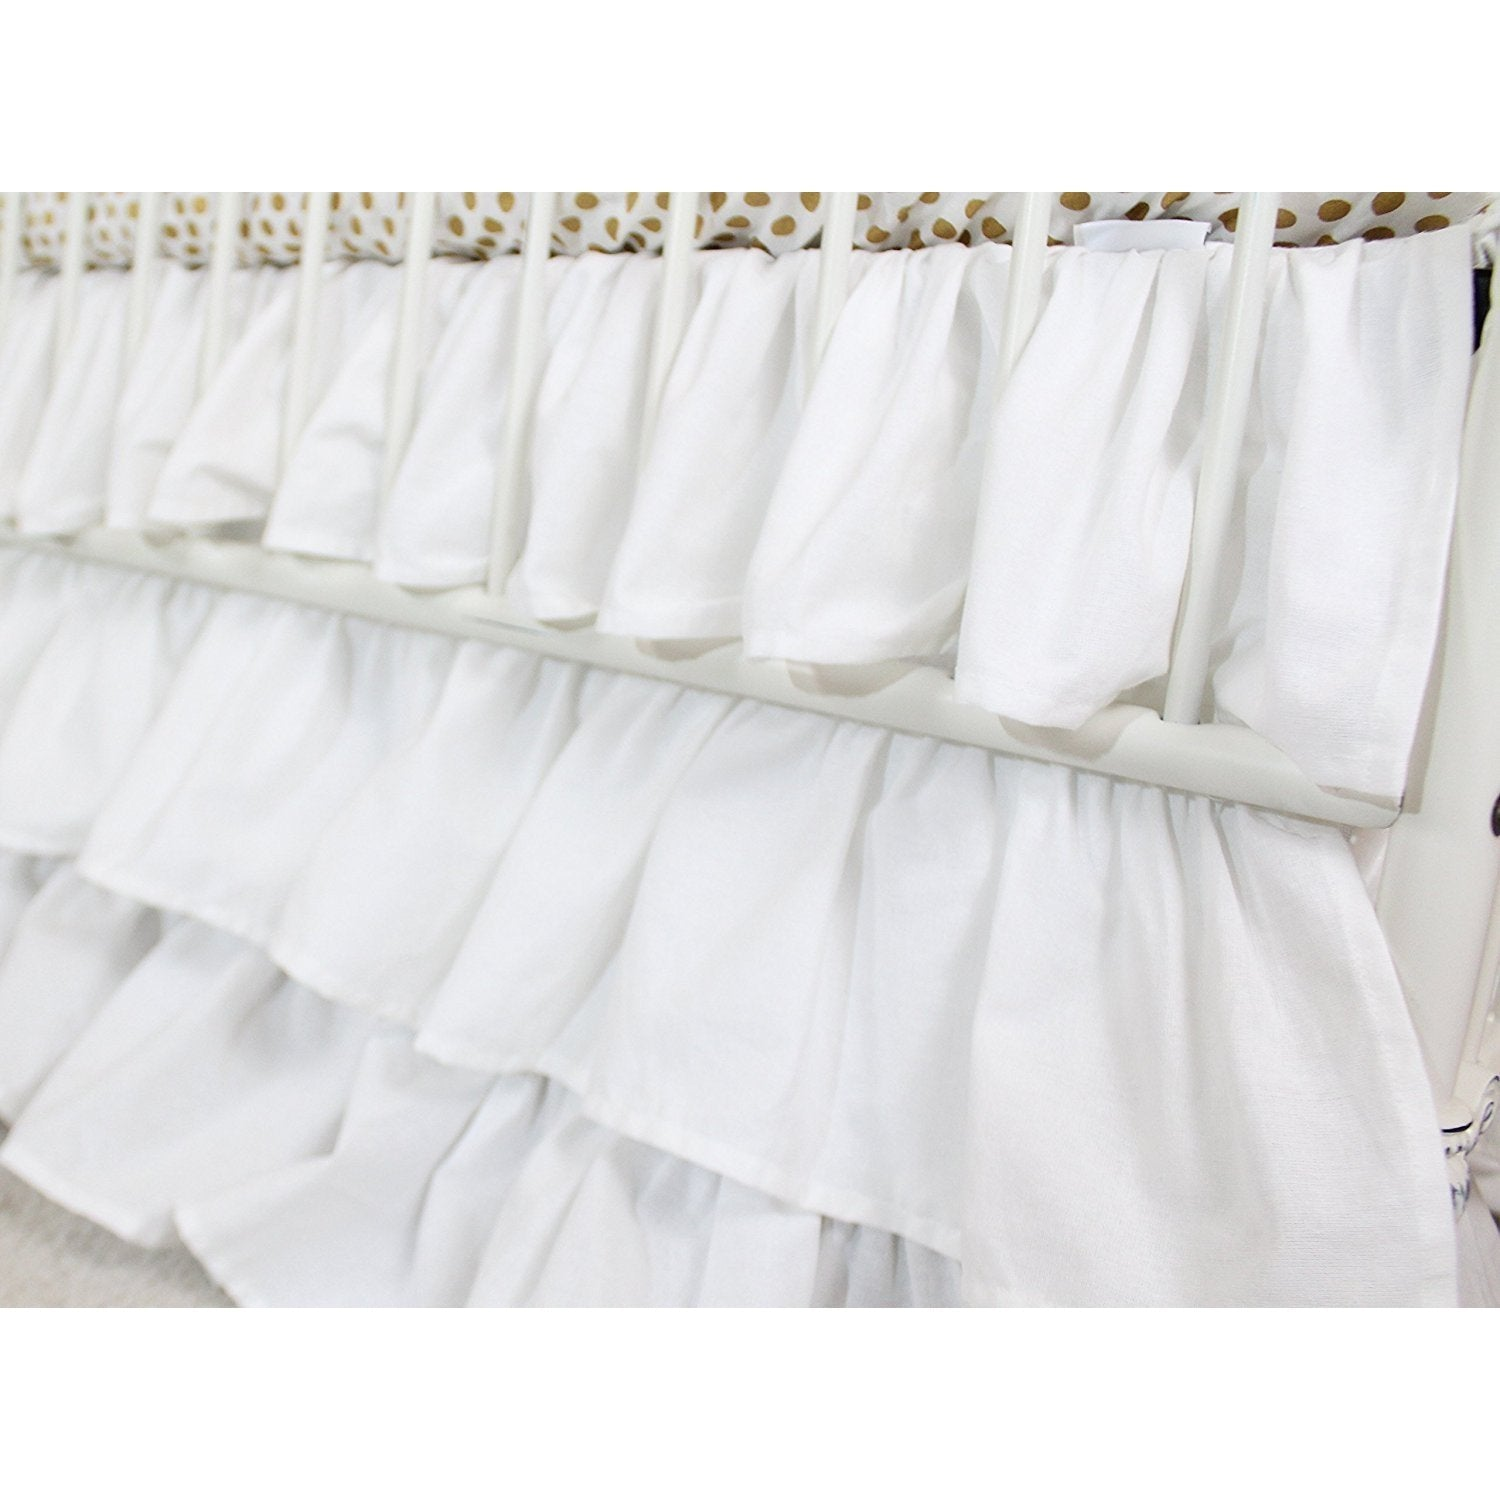 Waterfall Ruffle 3 Tier Skirt | White Cloud Nursery-Crib Skirt-Bold Bedding-Jack and Jill Boutique